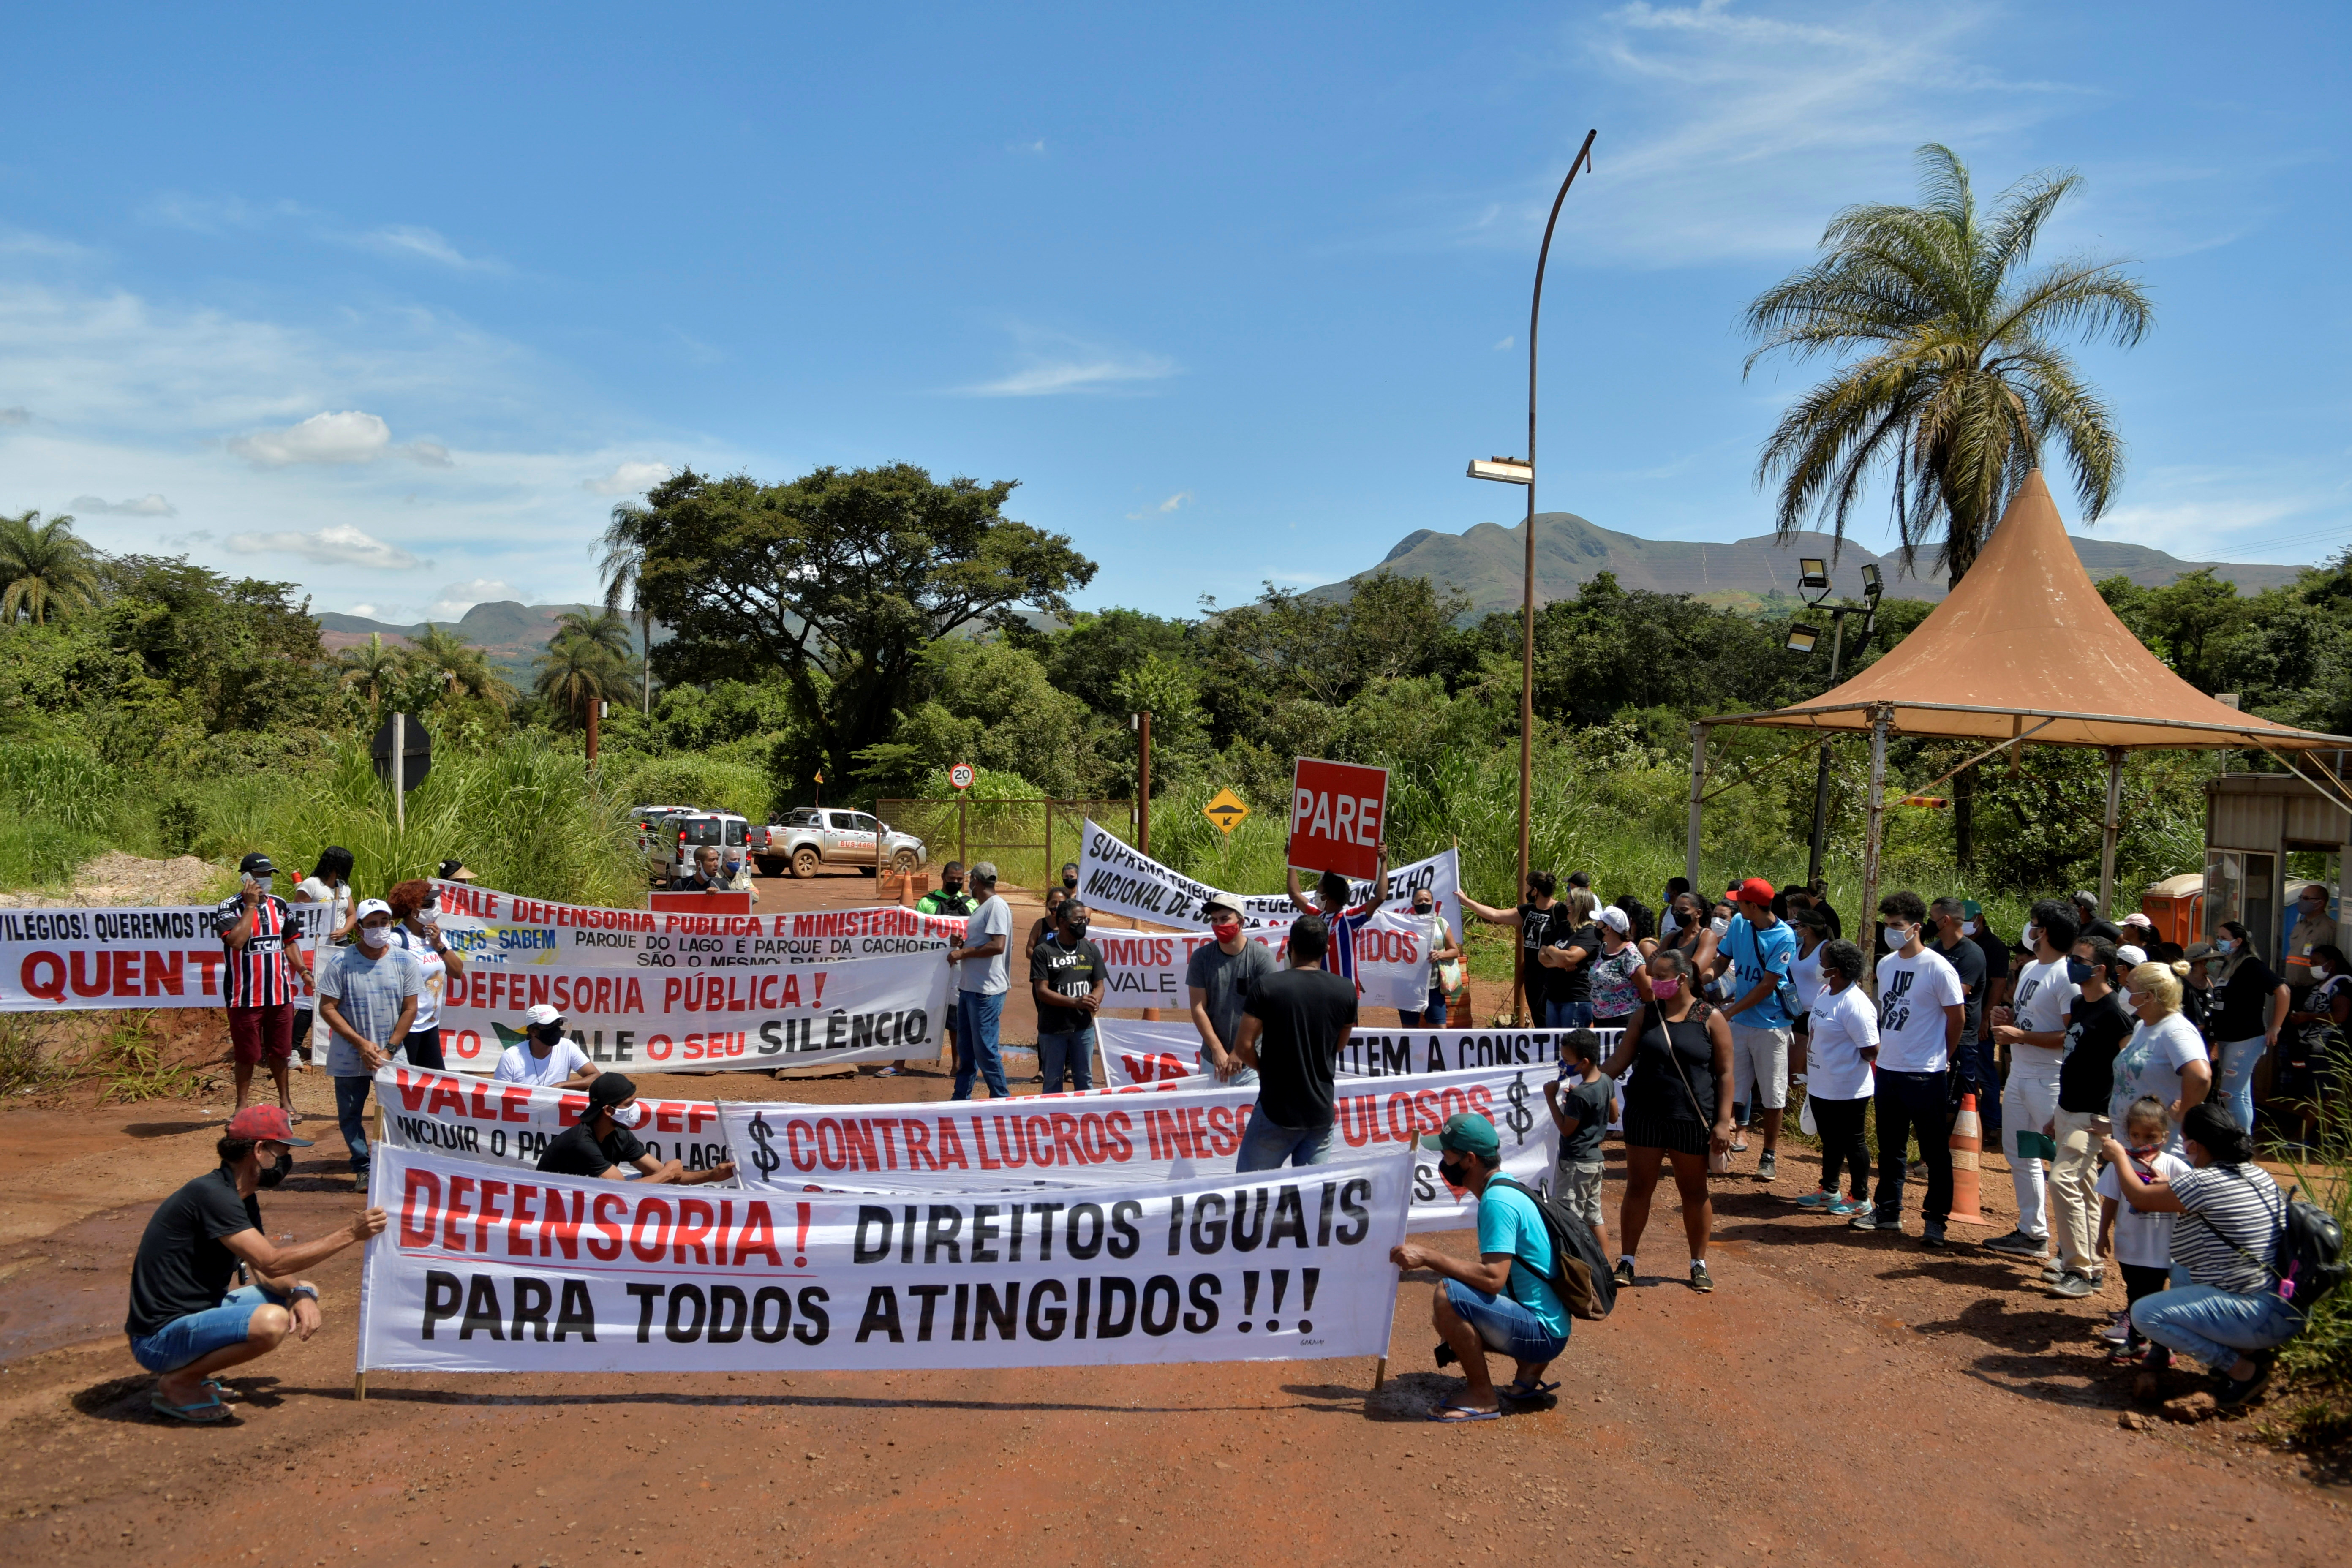 People affected by the disaster of the tailings dam owned by Brazilian mining company Vale SA, protest in front of the company, two years after it collapsed in Brumadinho, Minas Gerais state, Brazil, January 25, 2021. The banner reads: